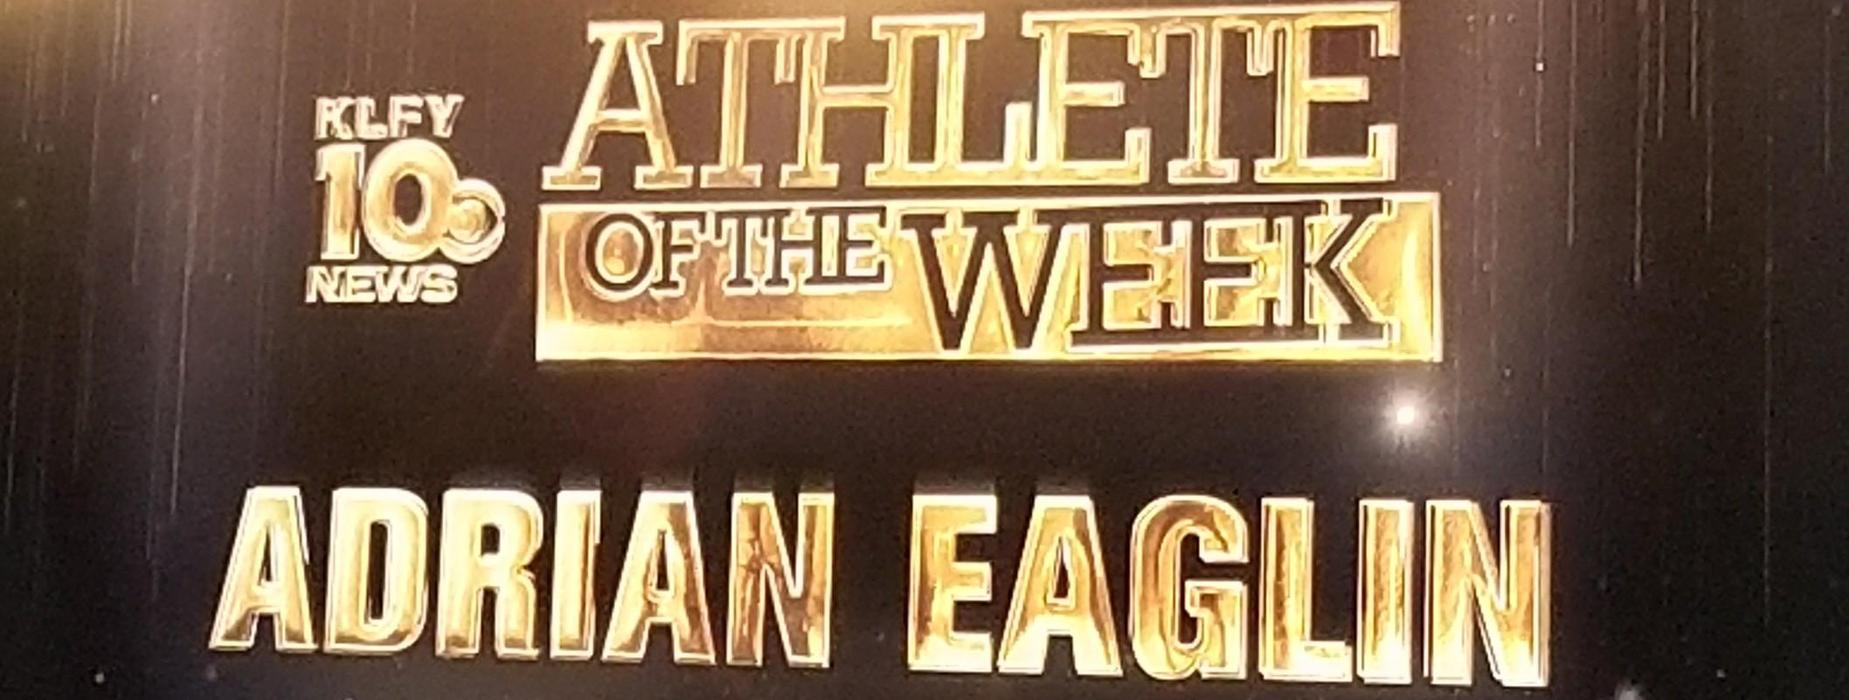 Sign with Adrian E. name on it for Athlete of the Week